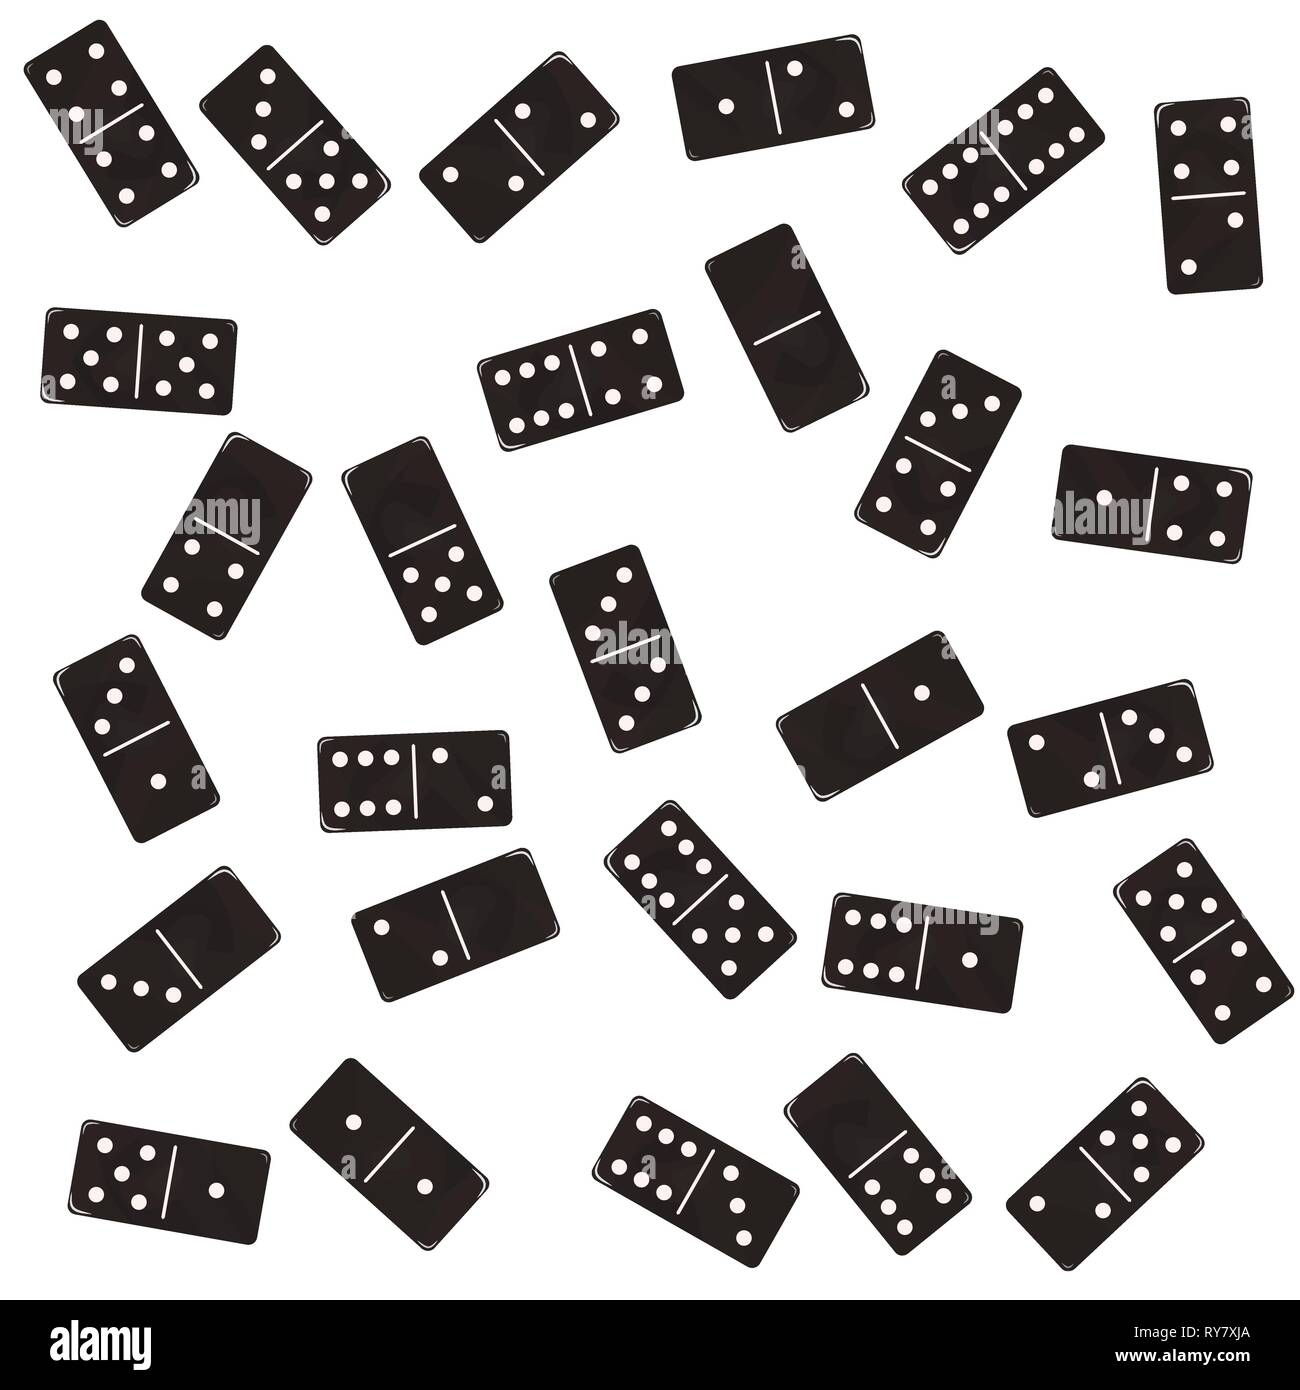 Domino flat, rectangular block. Black brick Vector illustration - Stock Vector